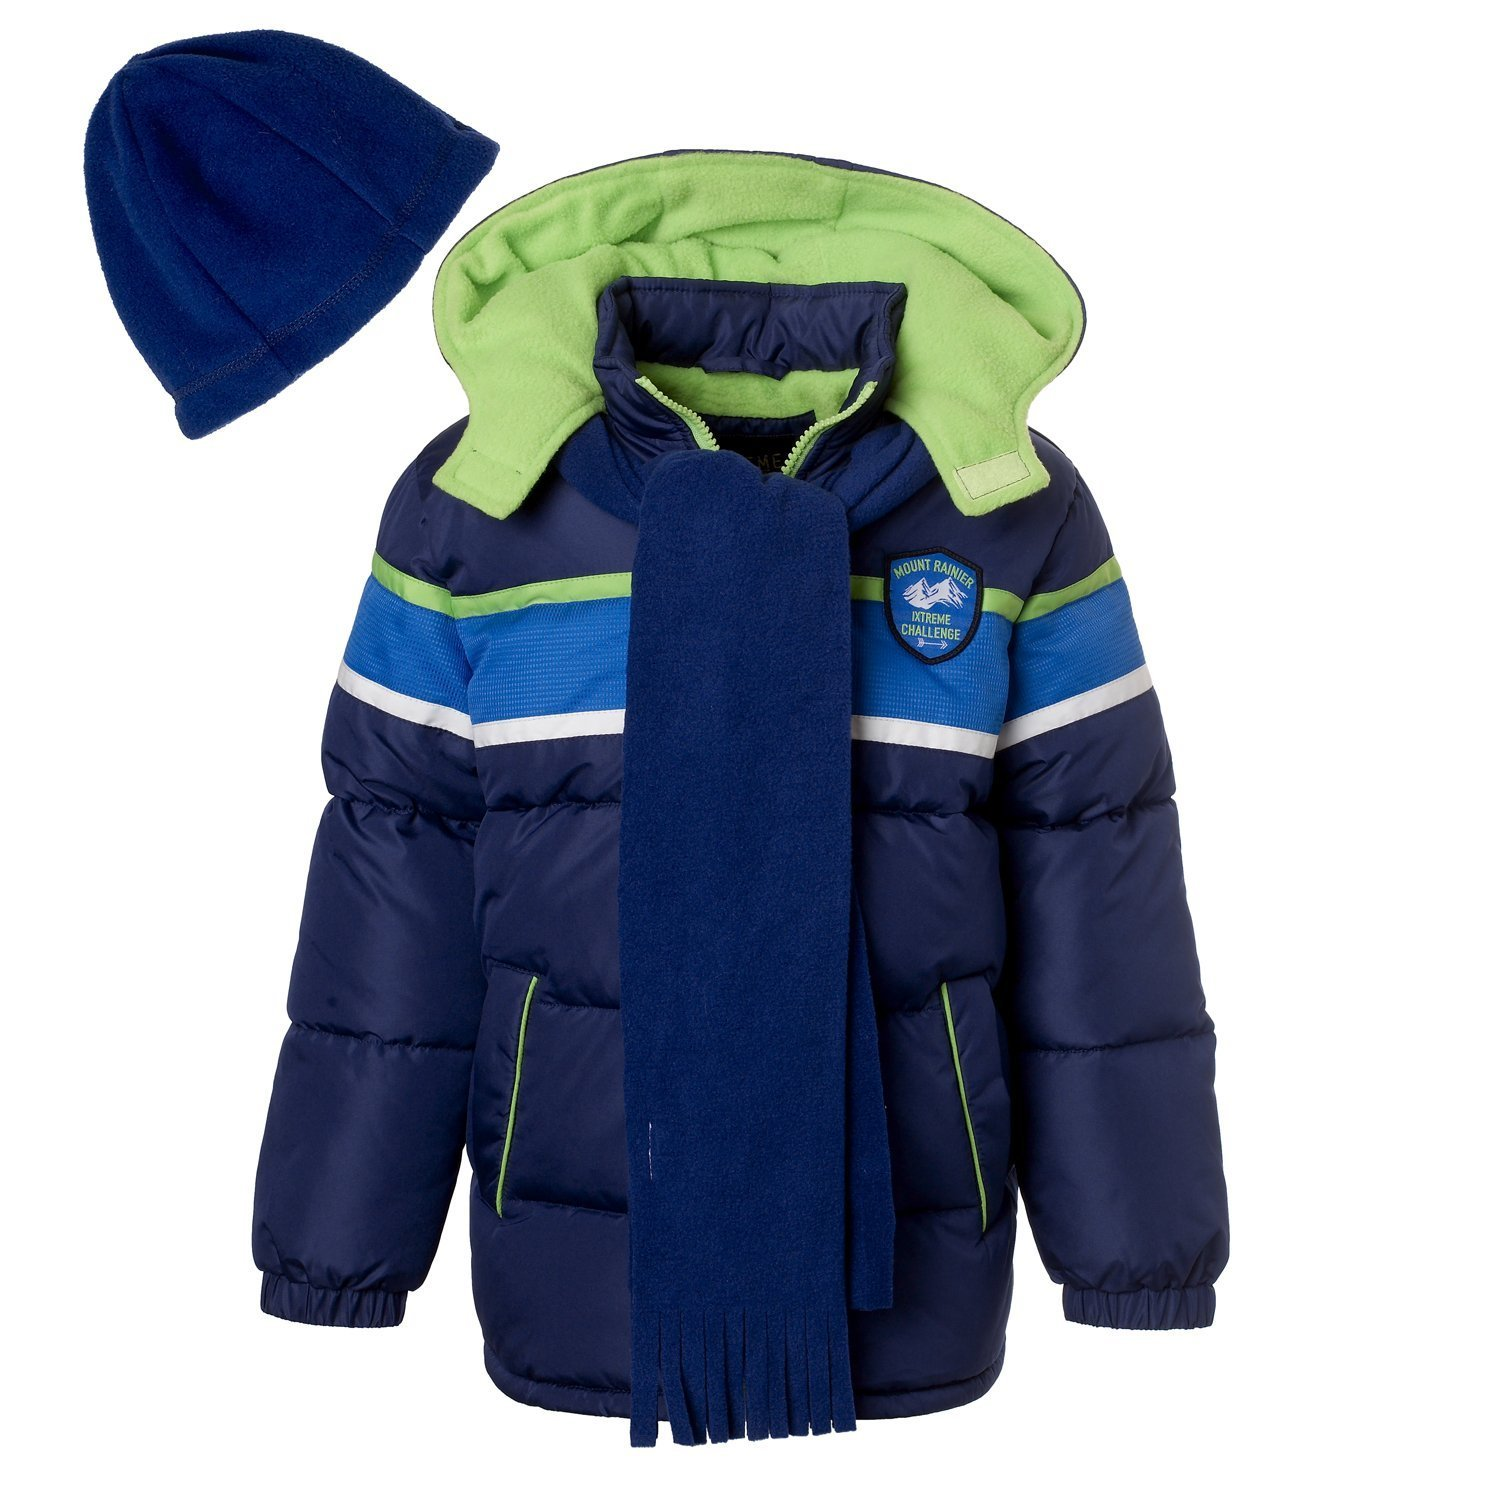 iXtreme Little Boys Colorblock Print Puffer Jacket Set with Hat & Scarf, Navy, 2T